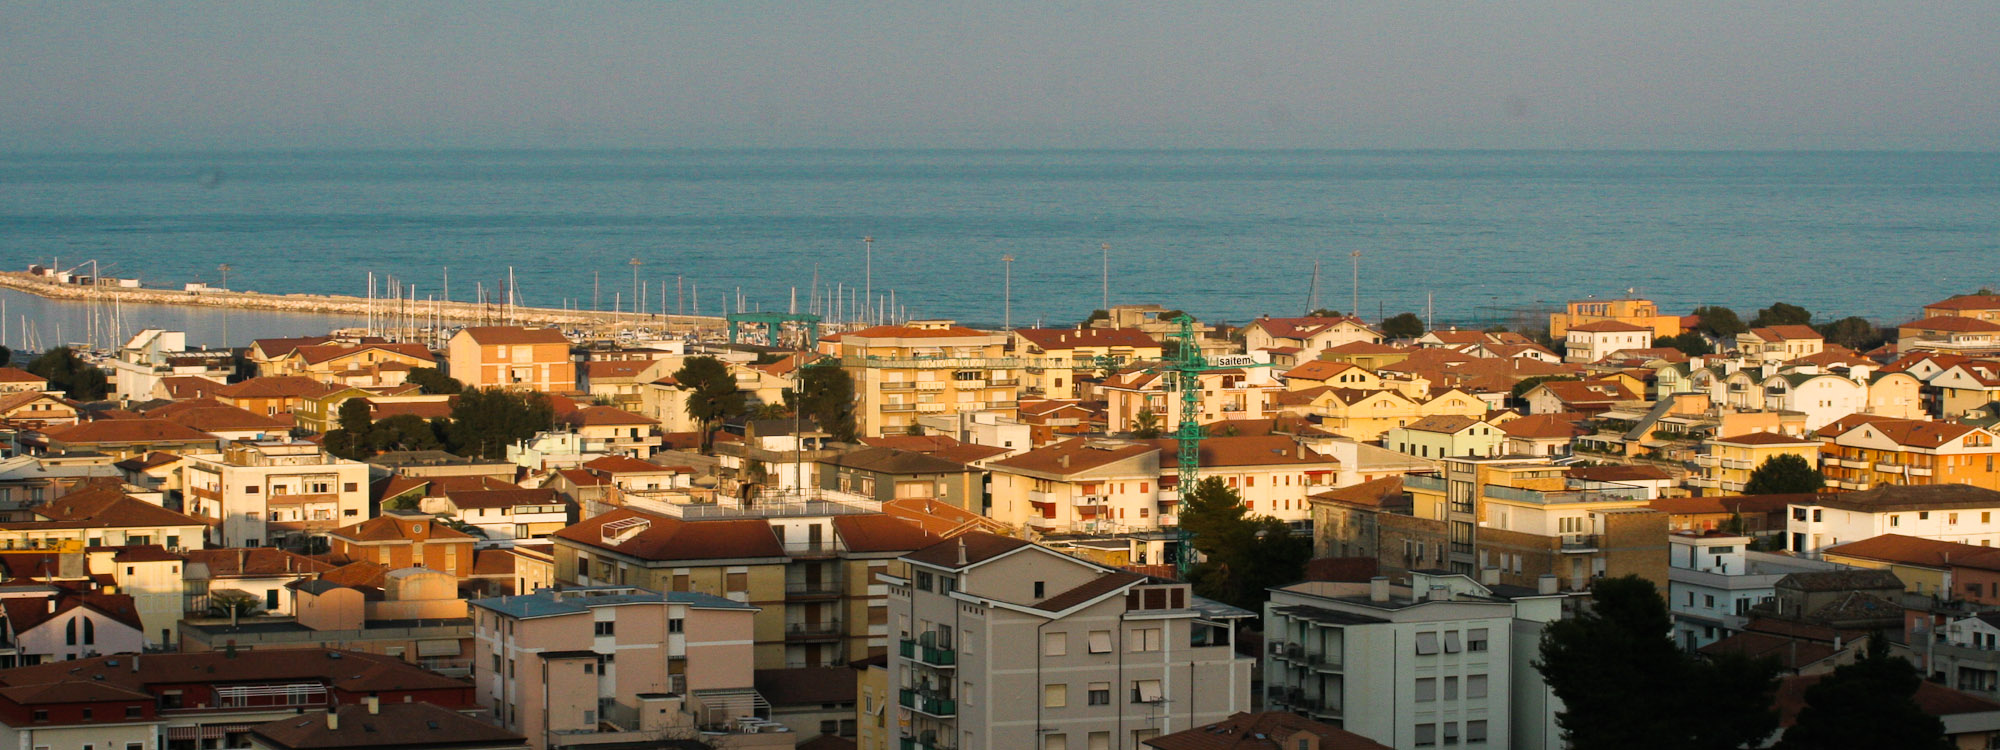 View from Giulianova Alta